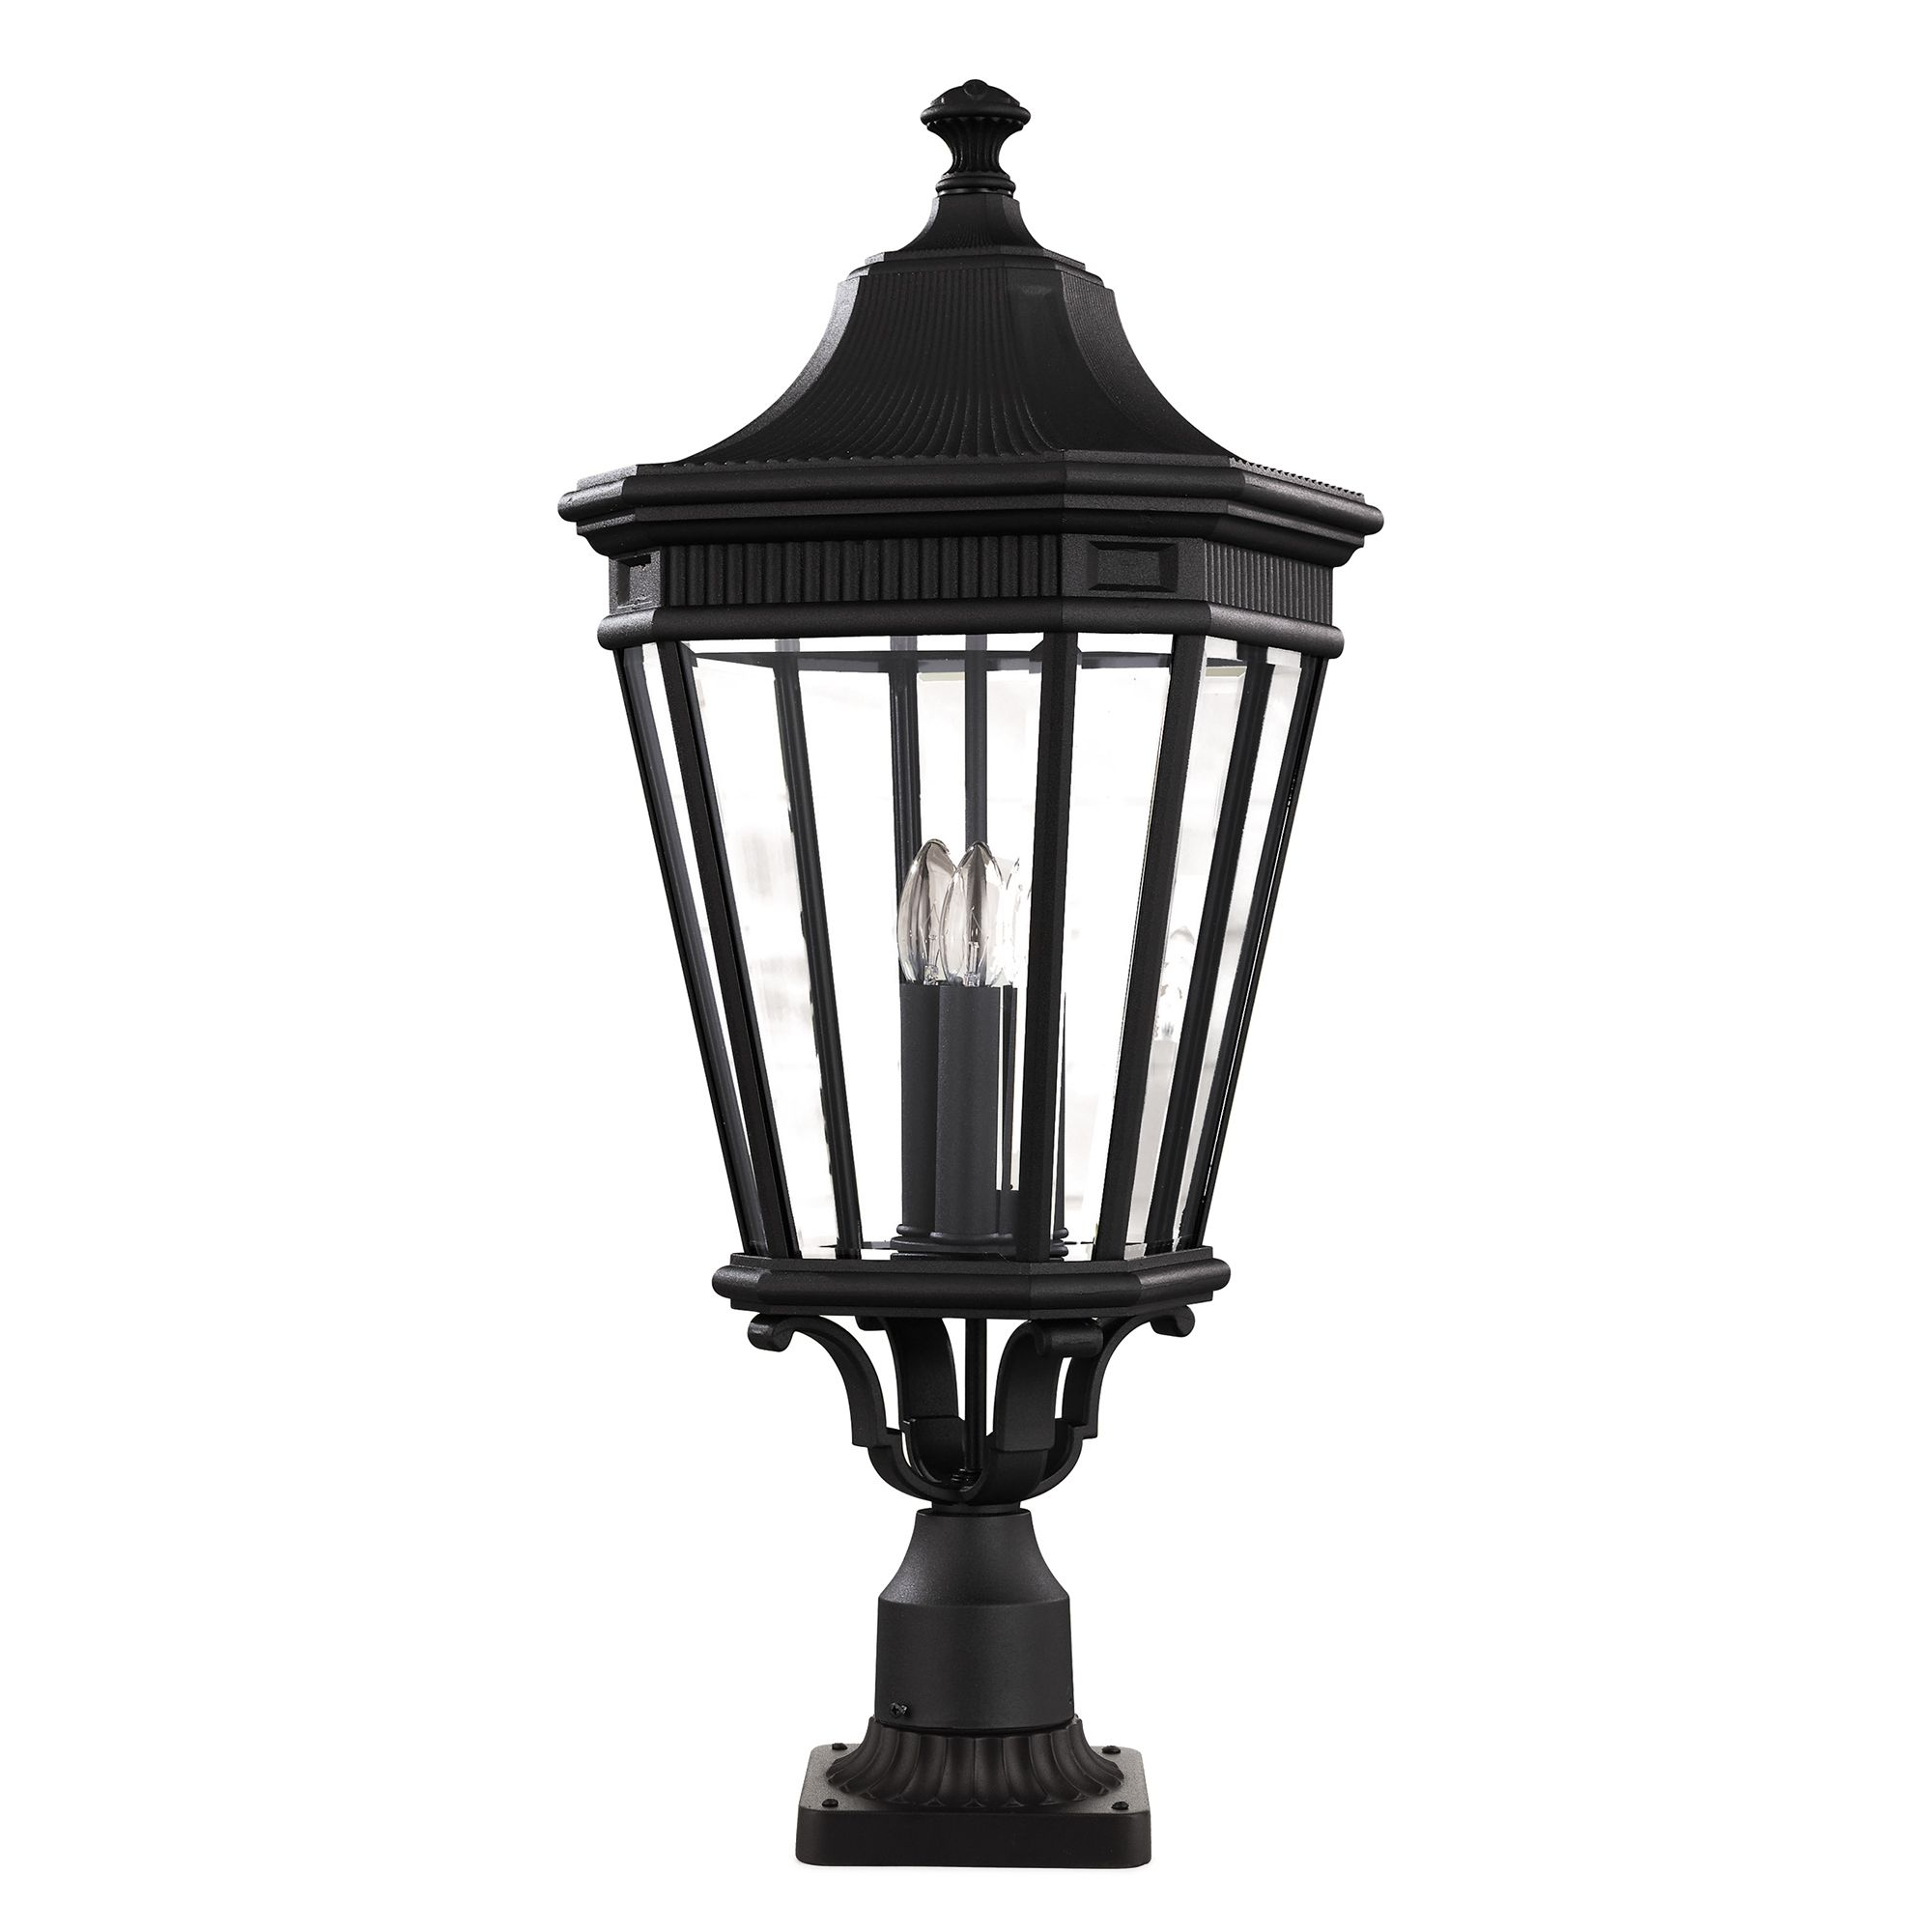 Baton Rouge Outdoor Pedestal Lantern By Feiss: Cotswold Lane Large Outdoor Pedestal In A Black Finish